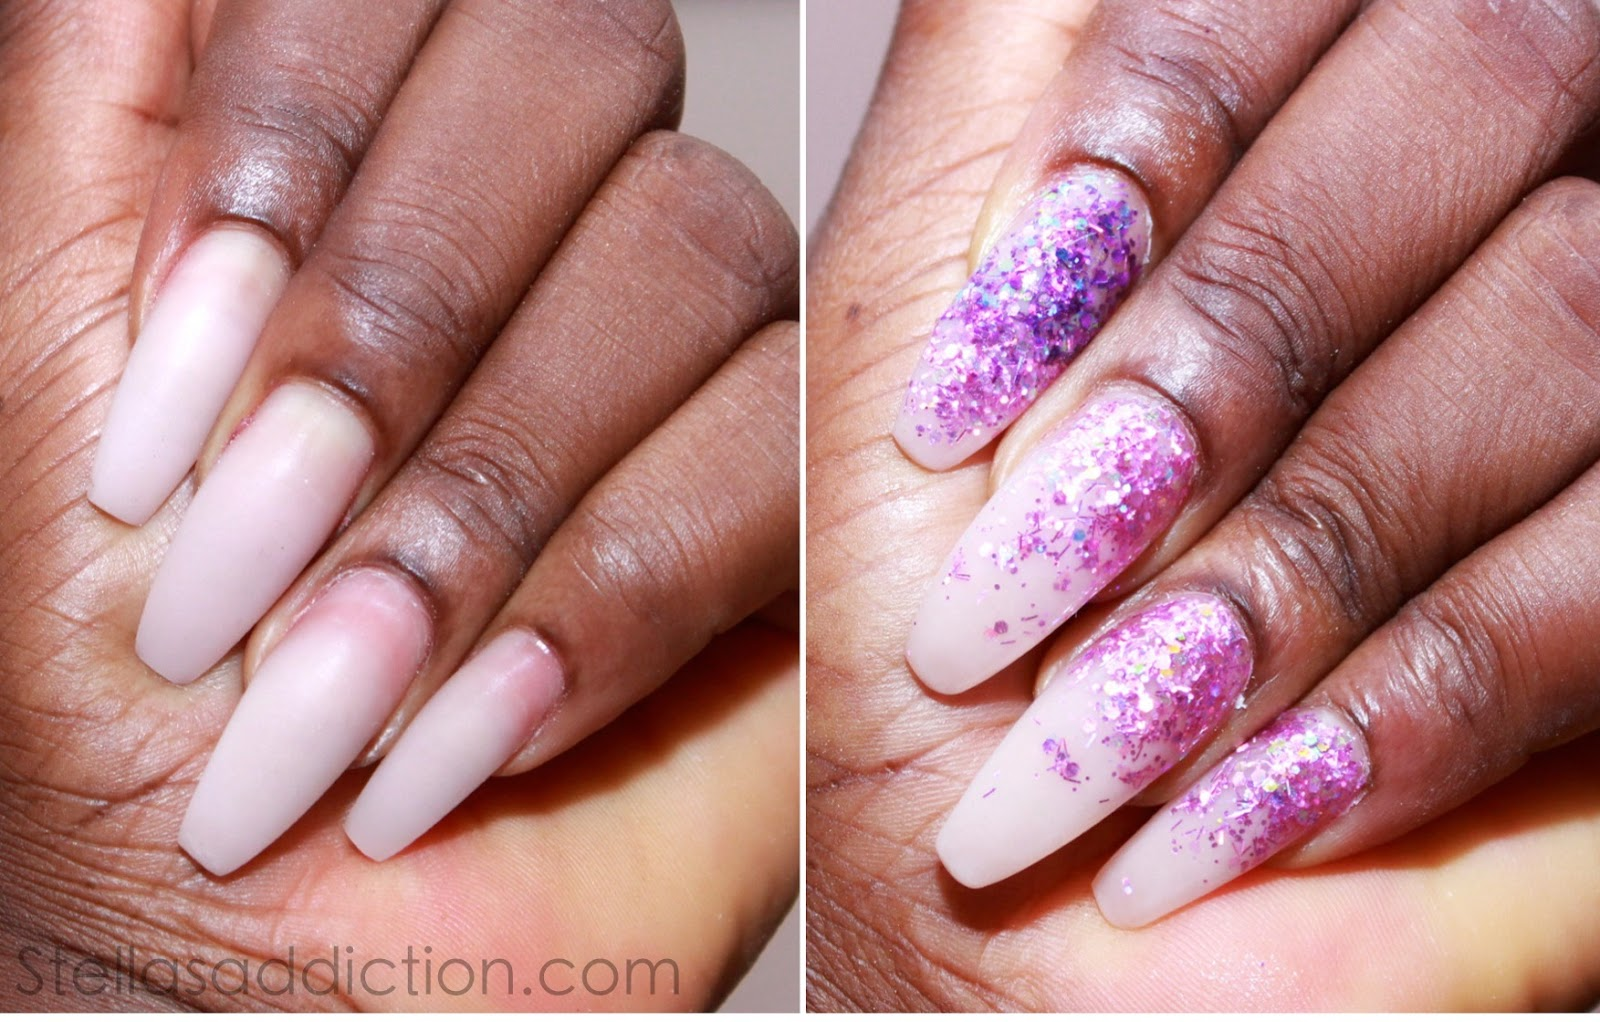 NOTD Pink Glitter Ombre Nail Art - Stella\'s Addiction